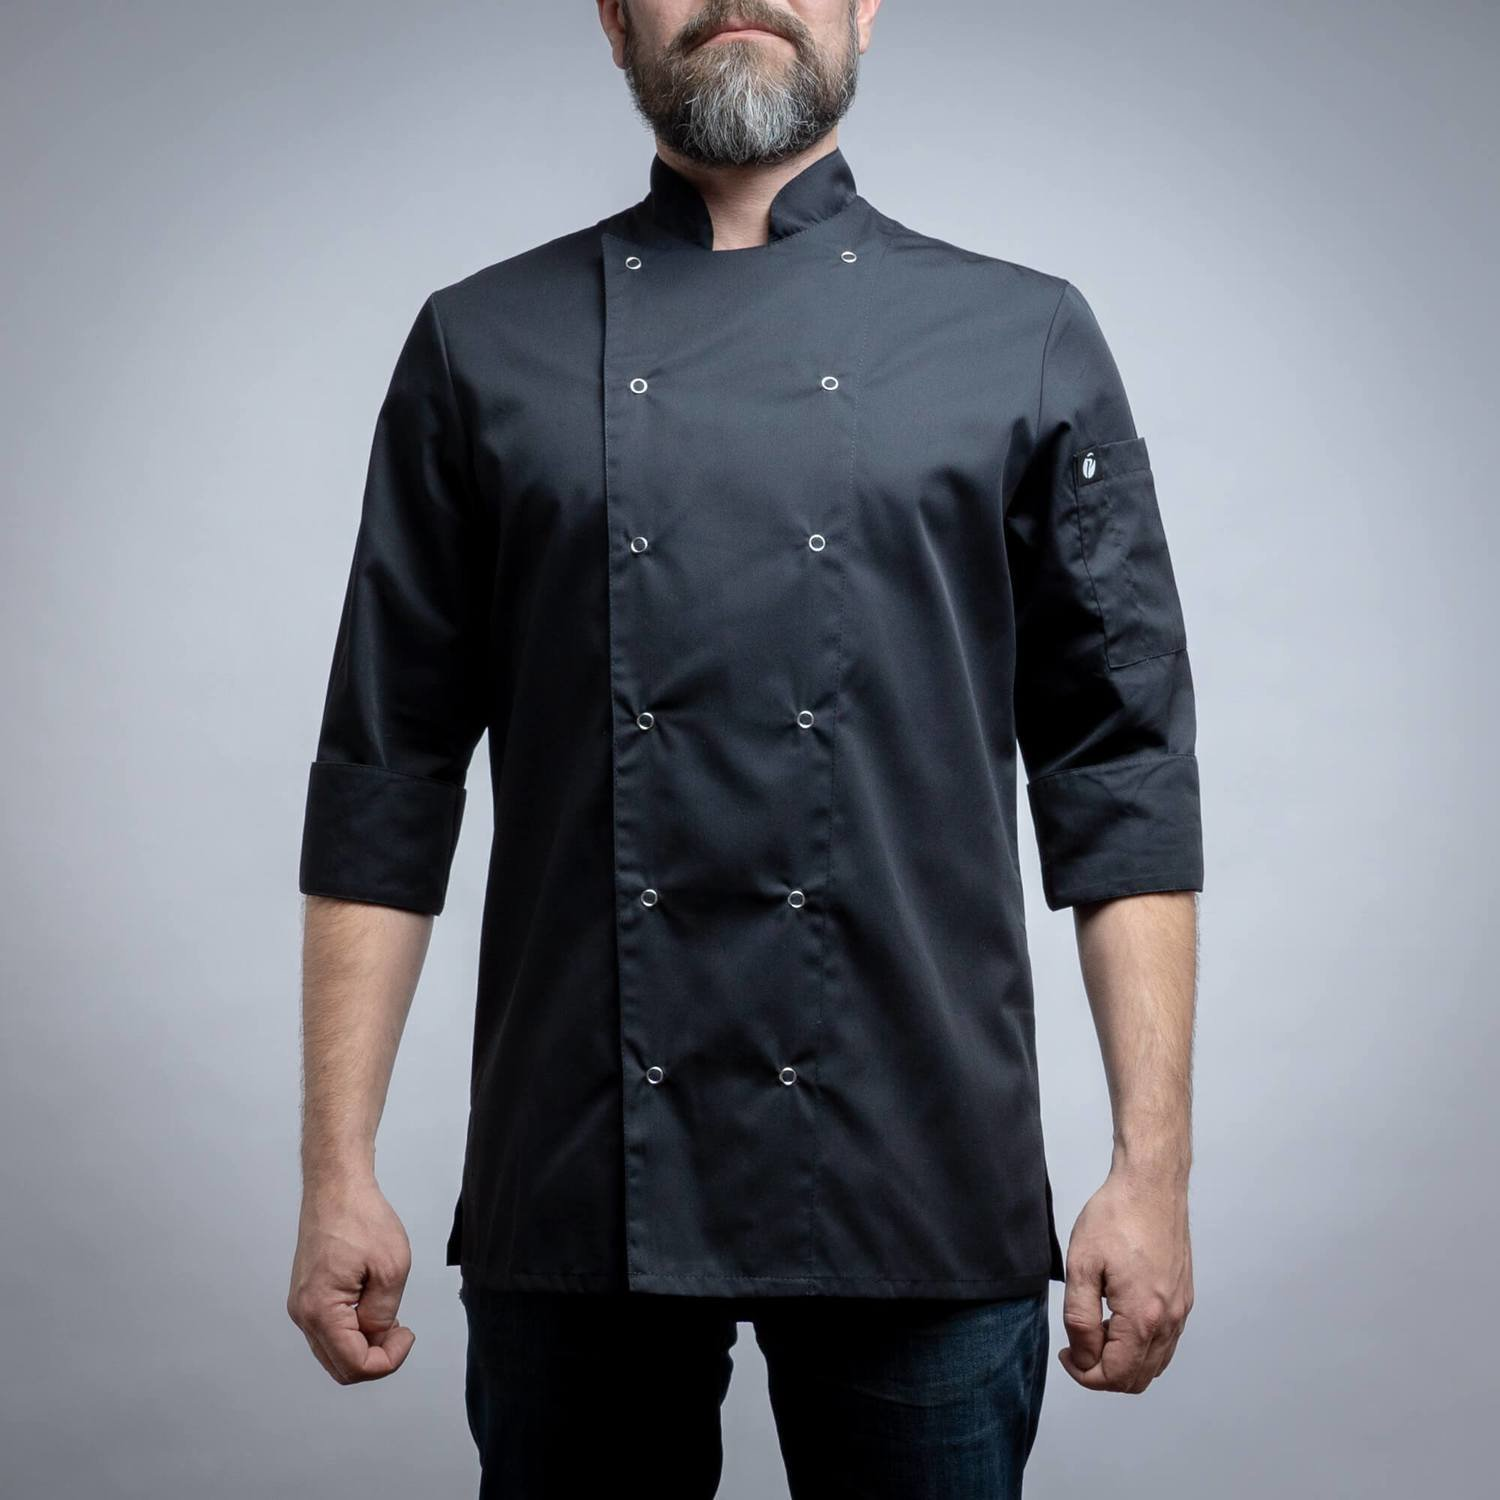 129BR - CHEF'S JACKET